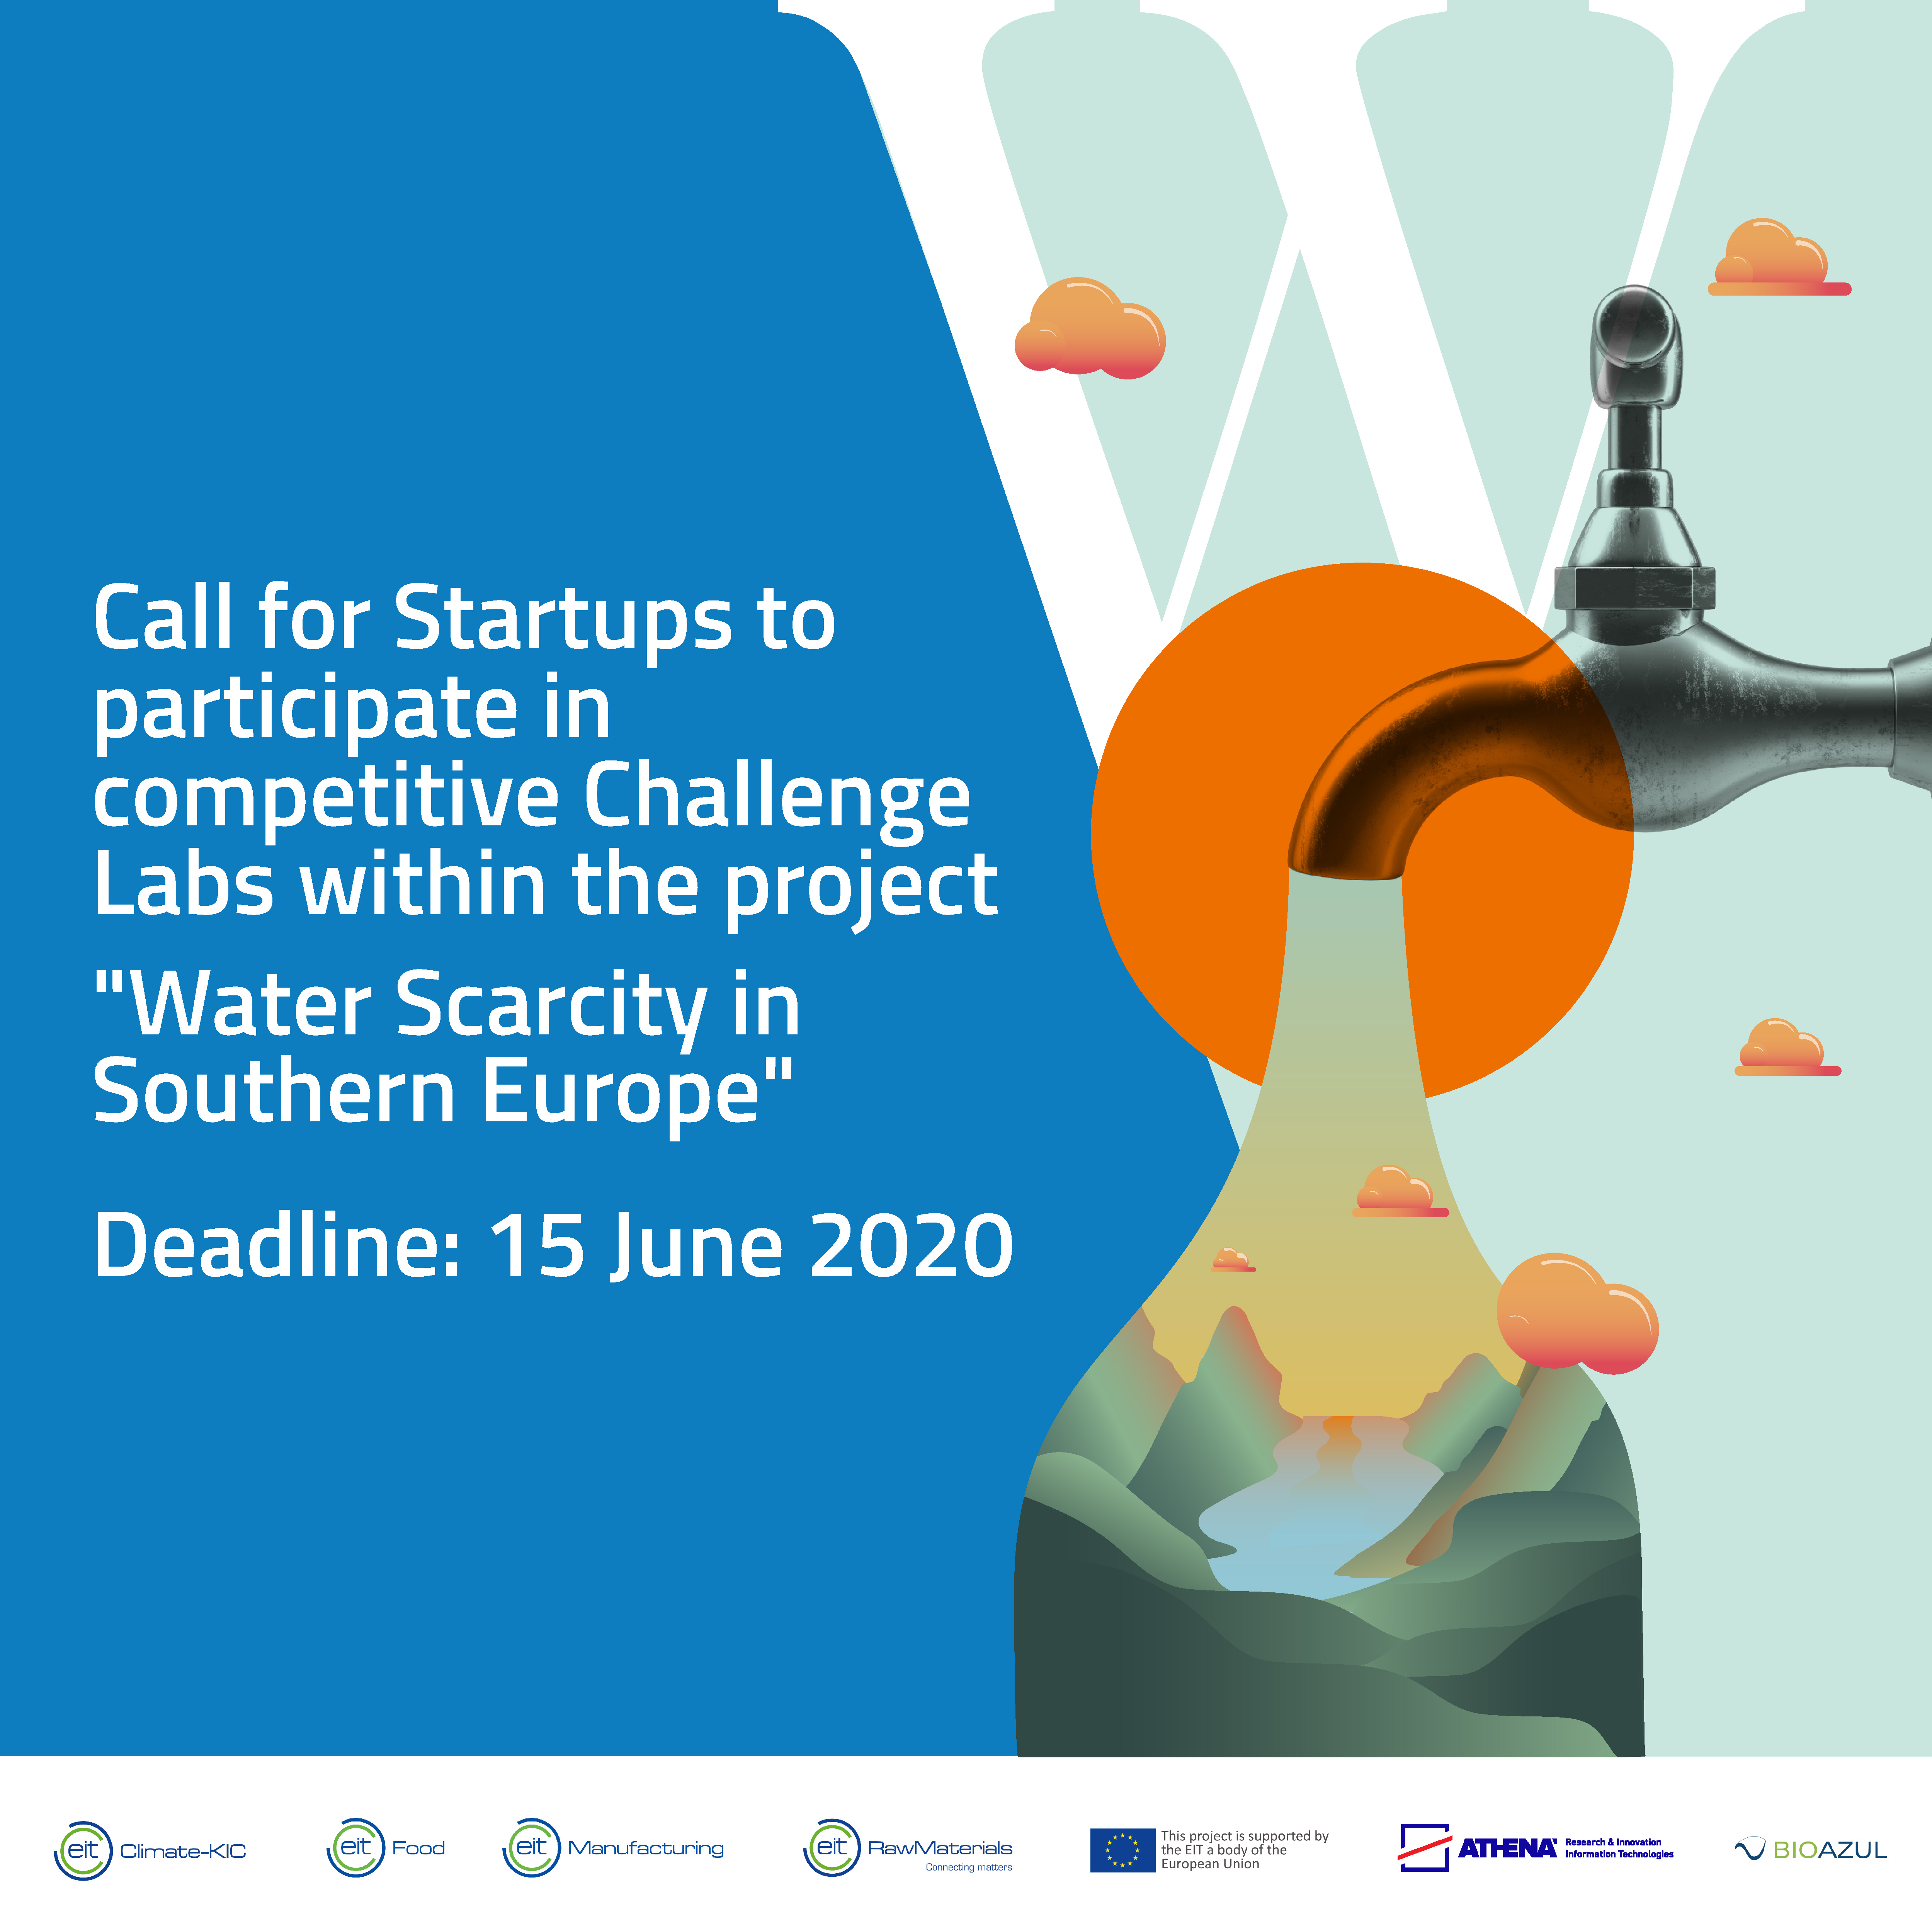 Applications open for startups coping with Water Scarcity in Southern Europe!